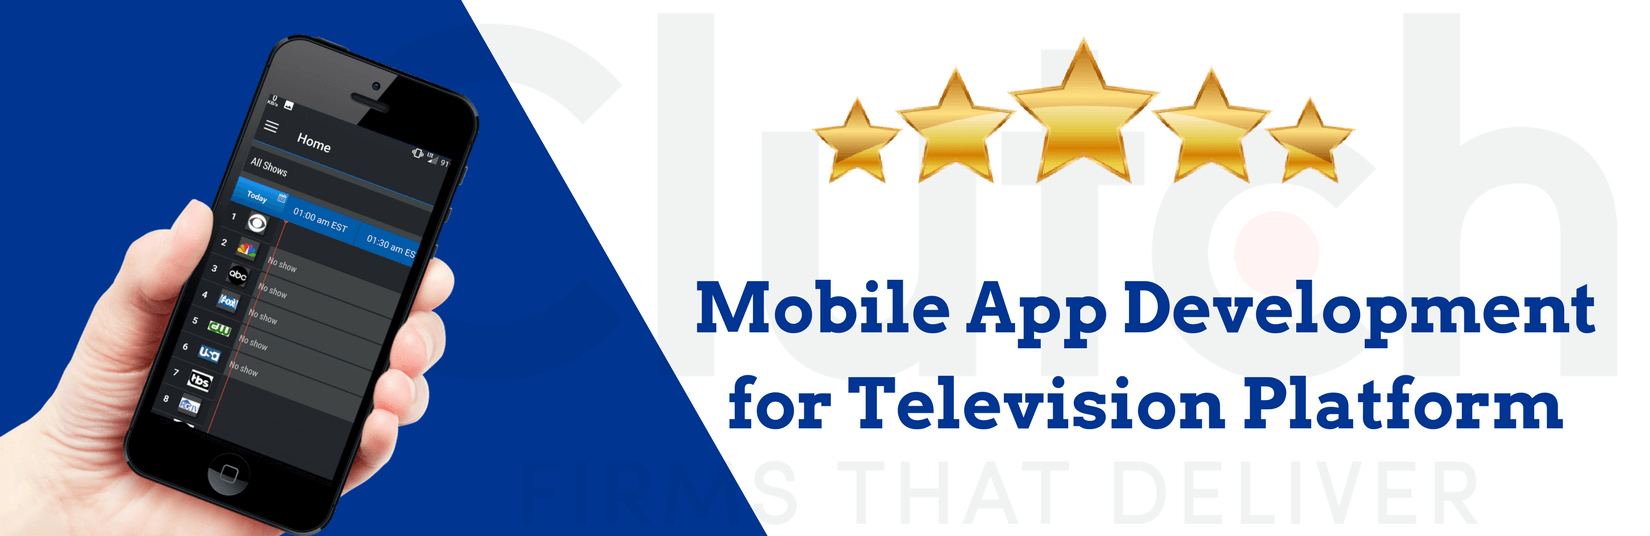 Clutch Review for Mobile App Development for Television Chat Platform